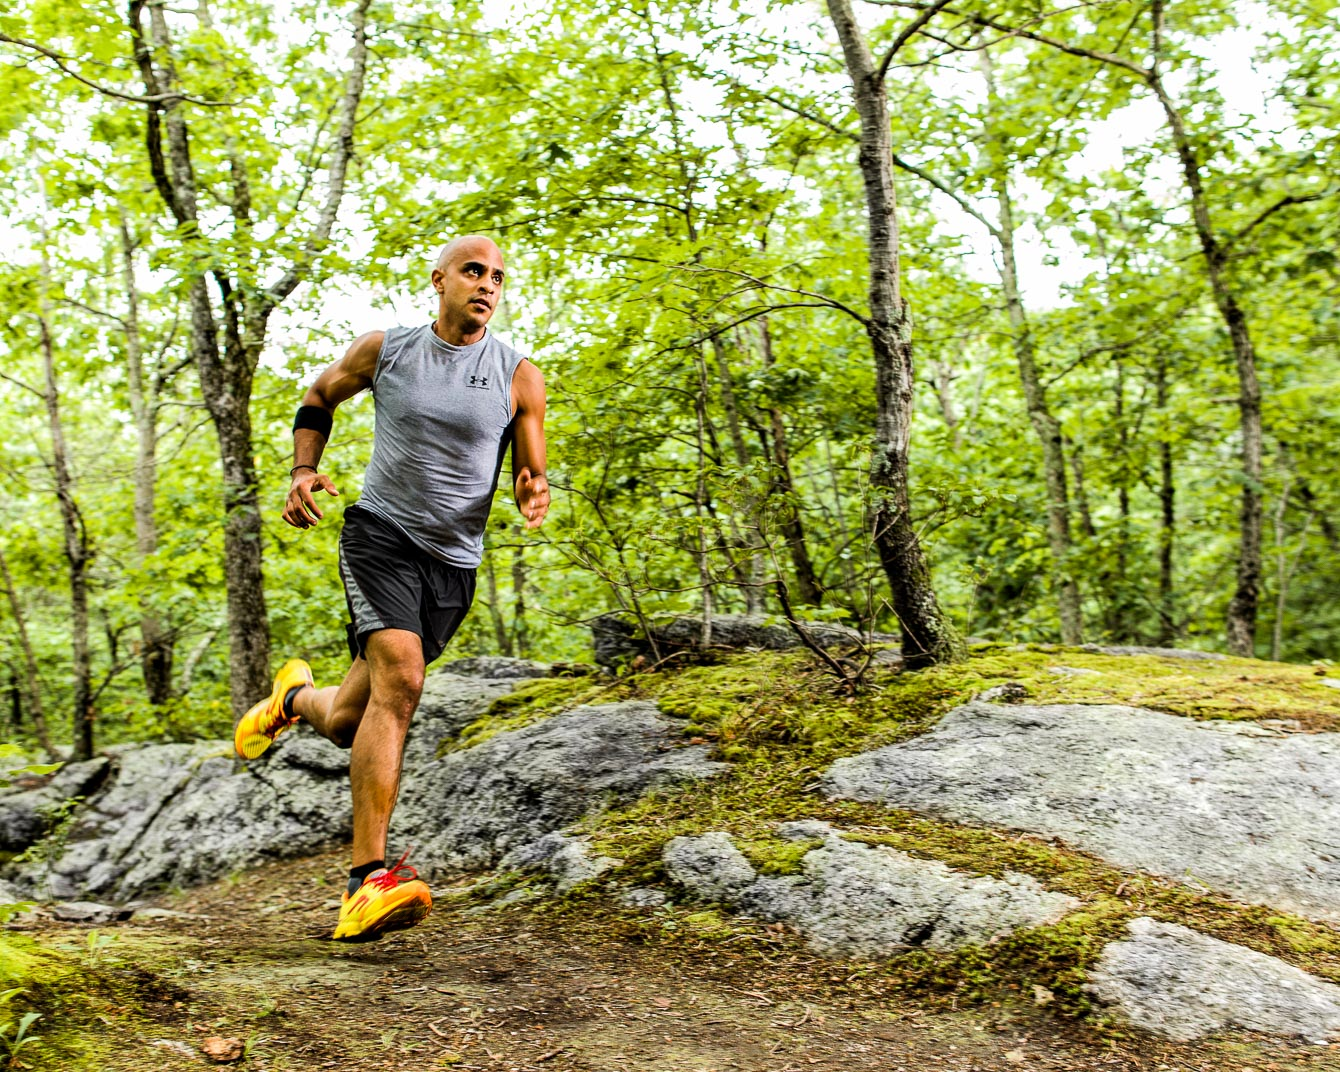 Atheletic Connecitcut man with Multiple Sclerosis runs through woods on trail